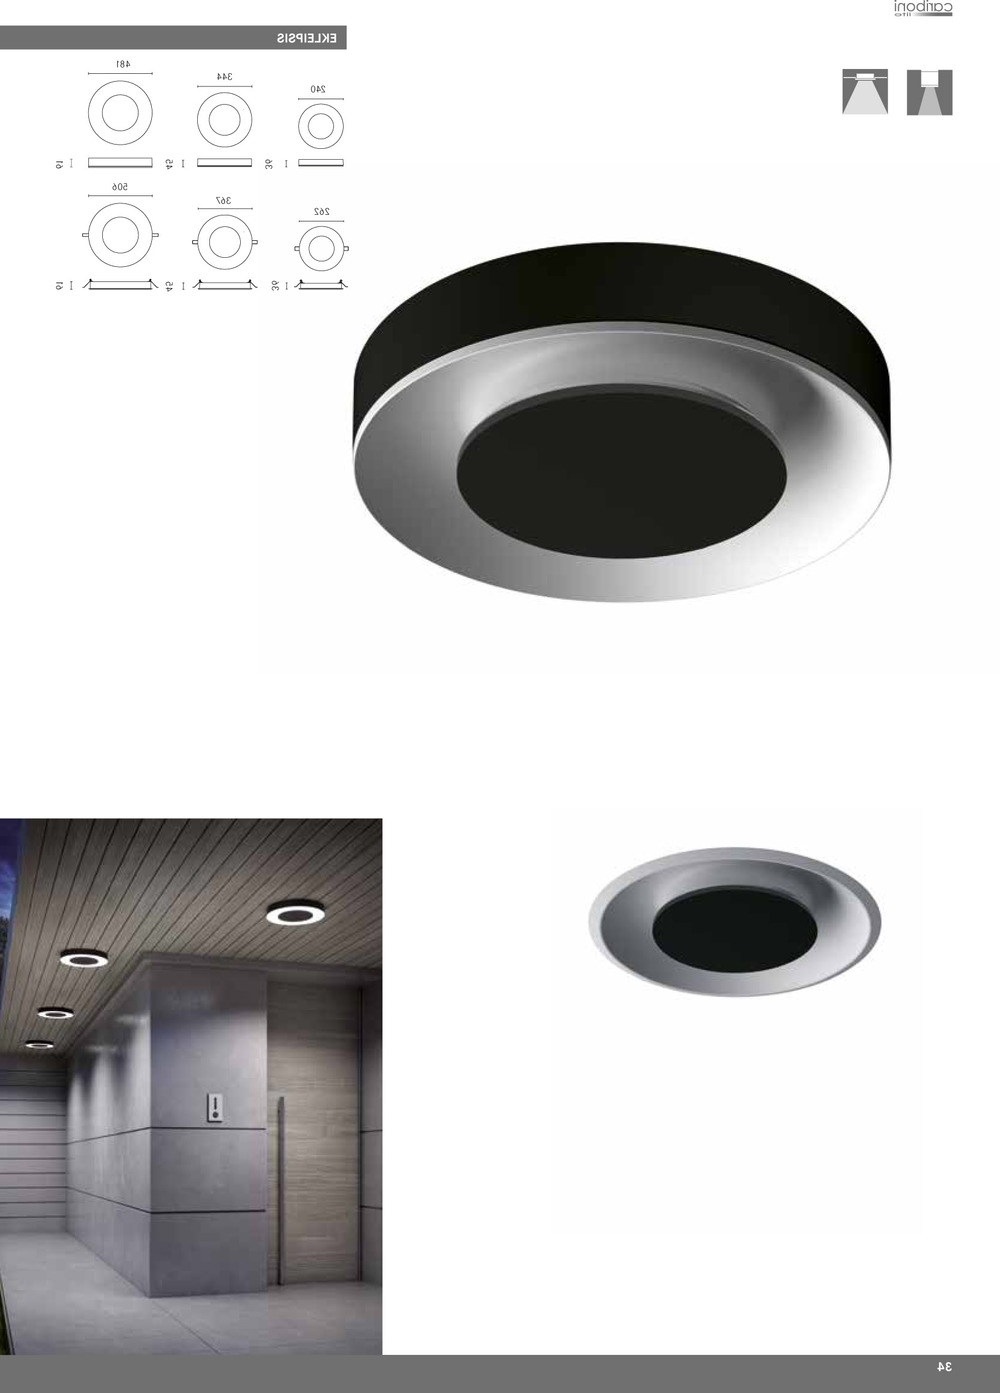 Outdoor Recessed Ceiling Lights With Regard To Well Known Architectural Exterior Recessed Lighting — Lighting Solutions (View 7 of 20)